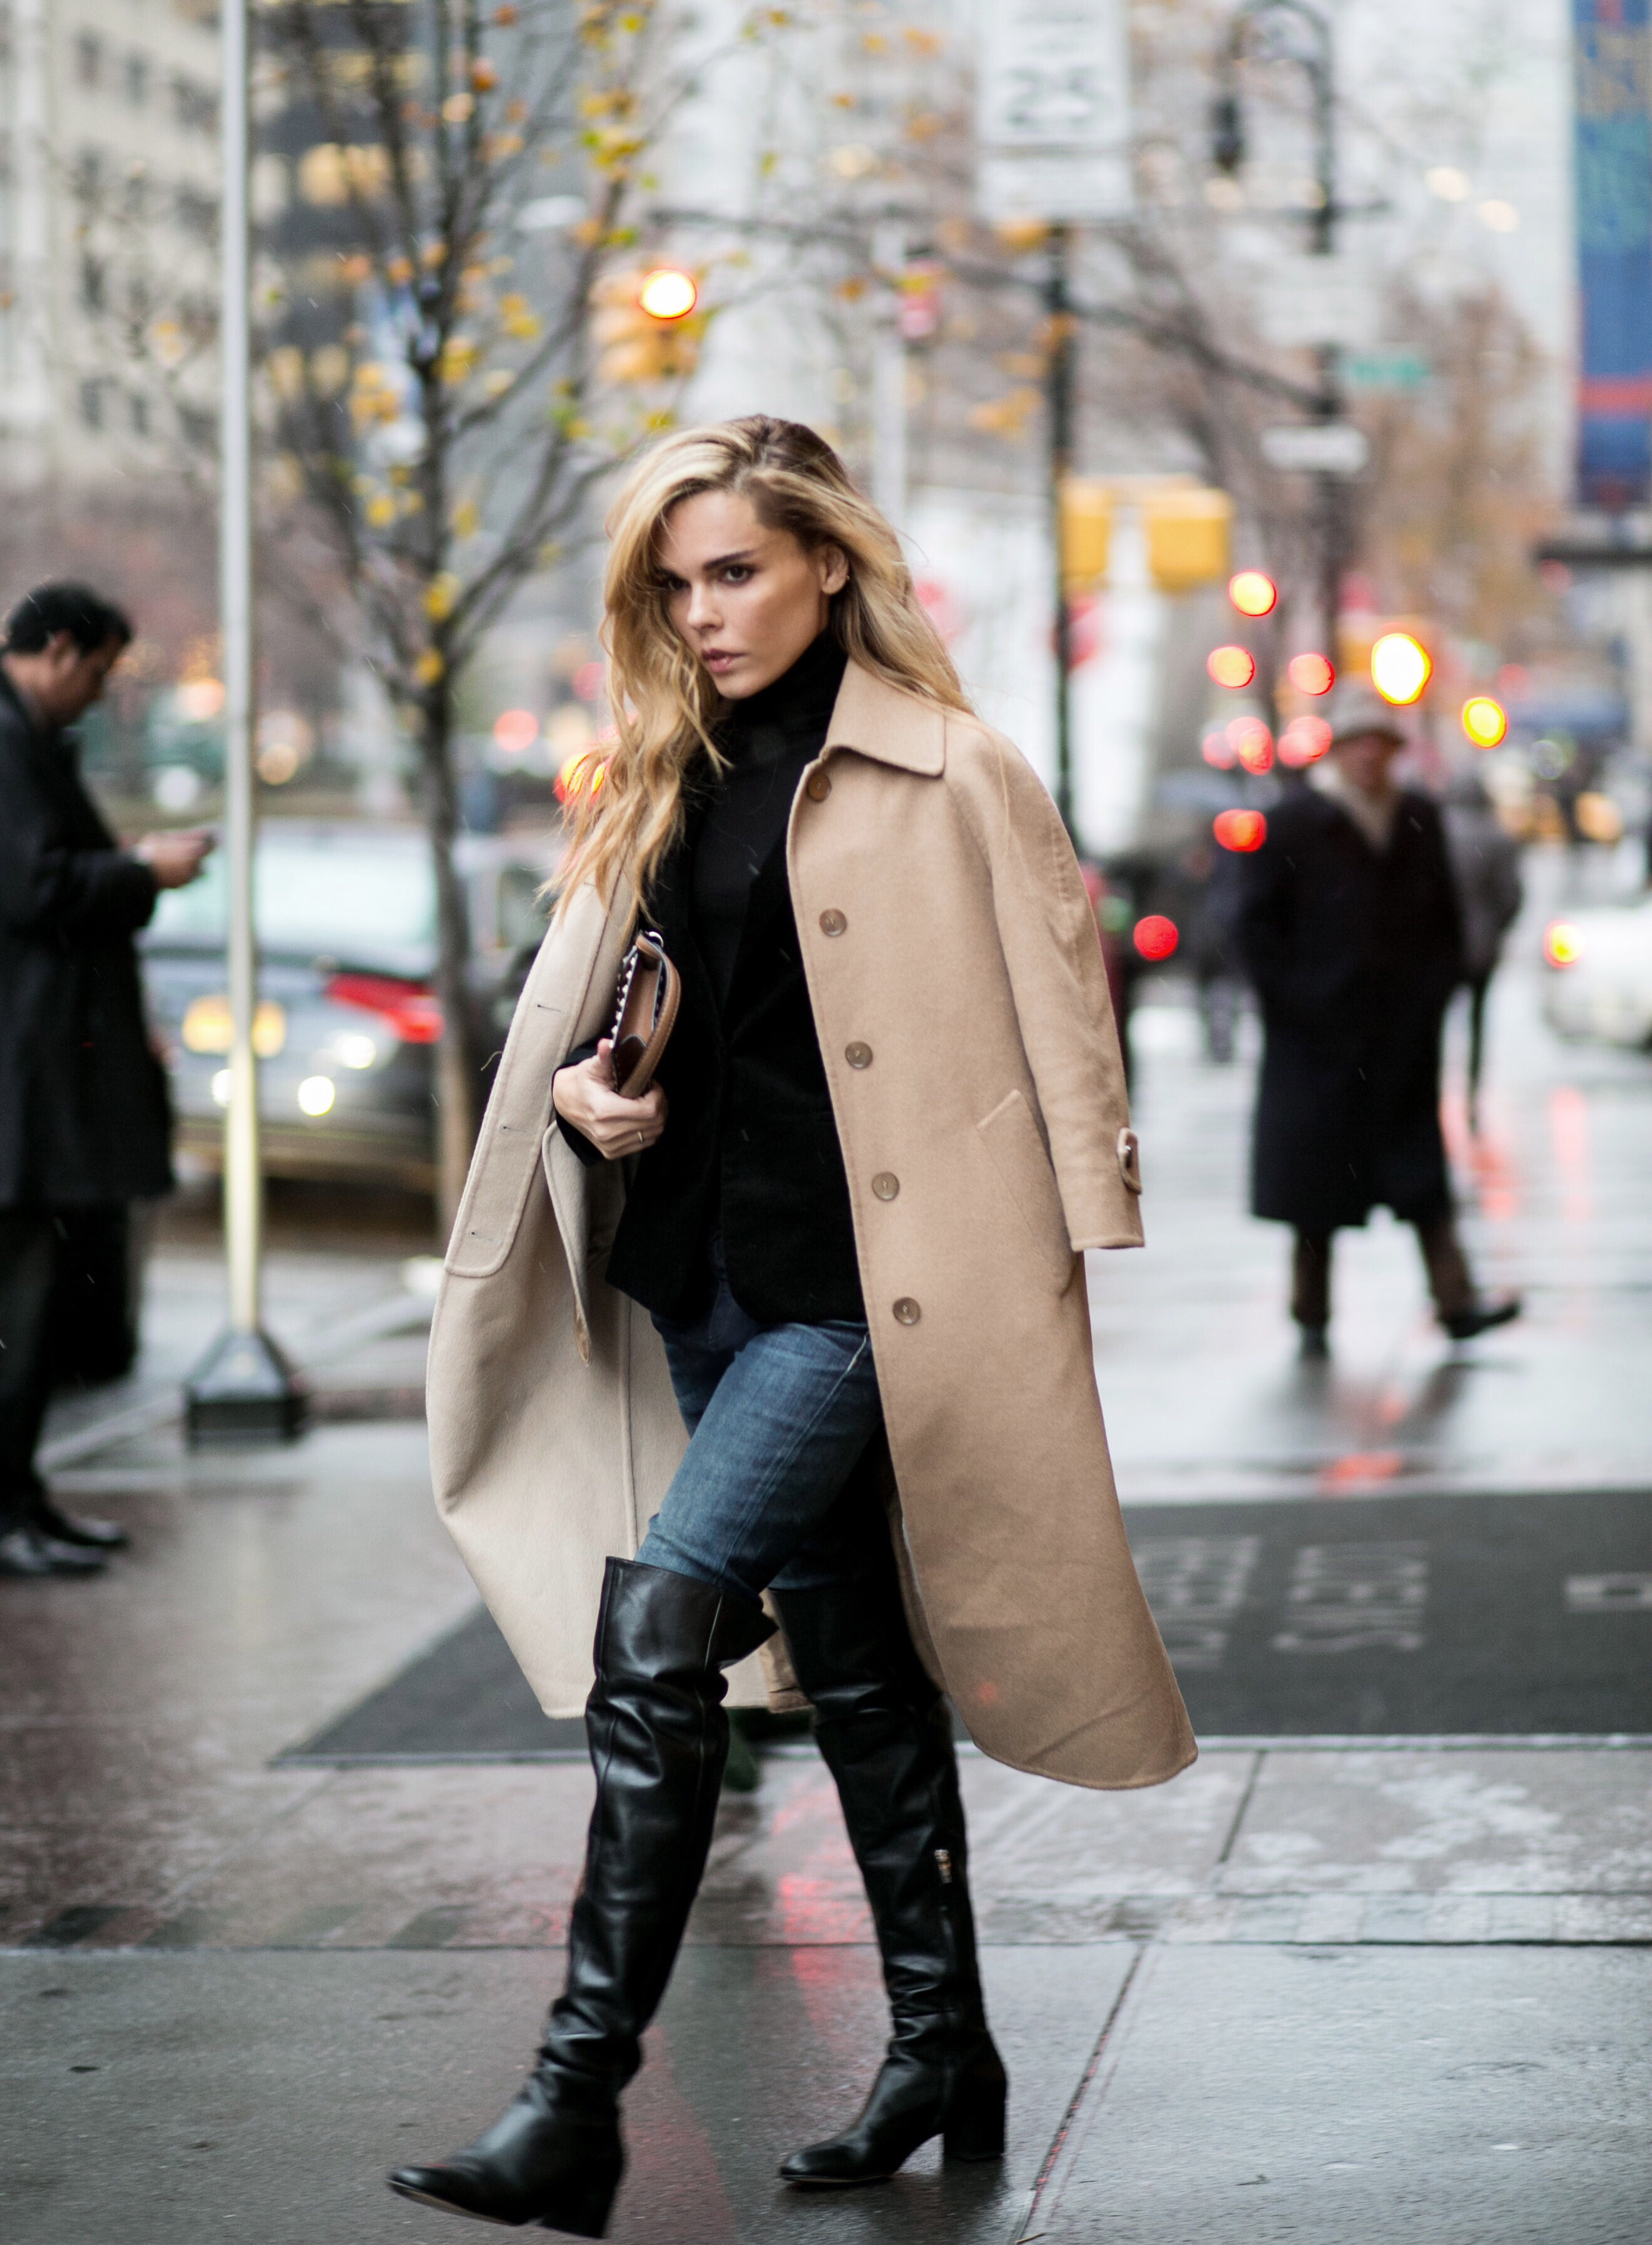 Dress Up Over The Knee Boots Trend: Evangelie Smyrniotaki is wearing boots from Gianvito Rossi